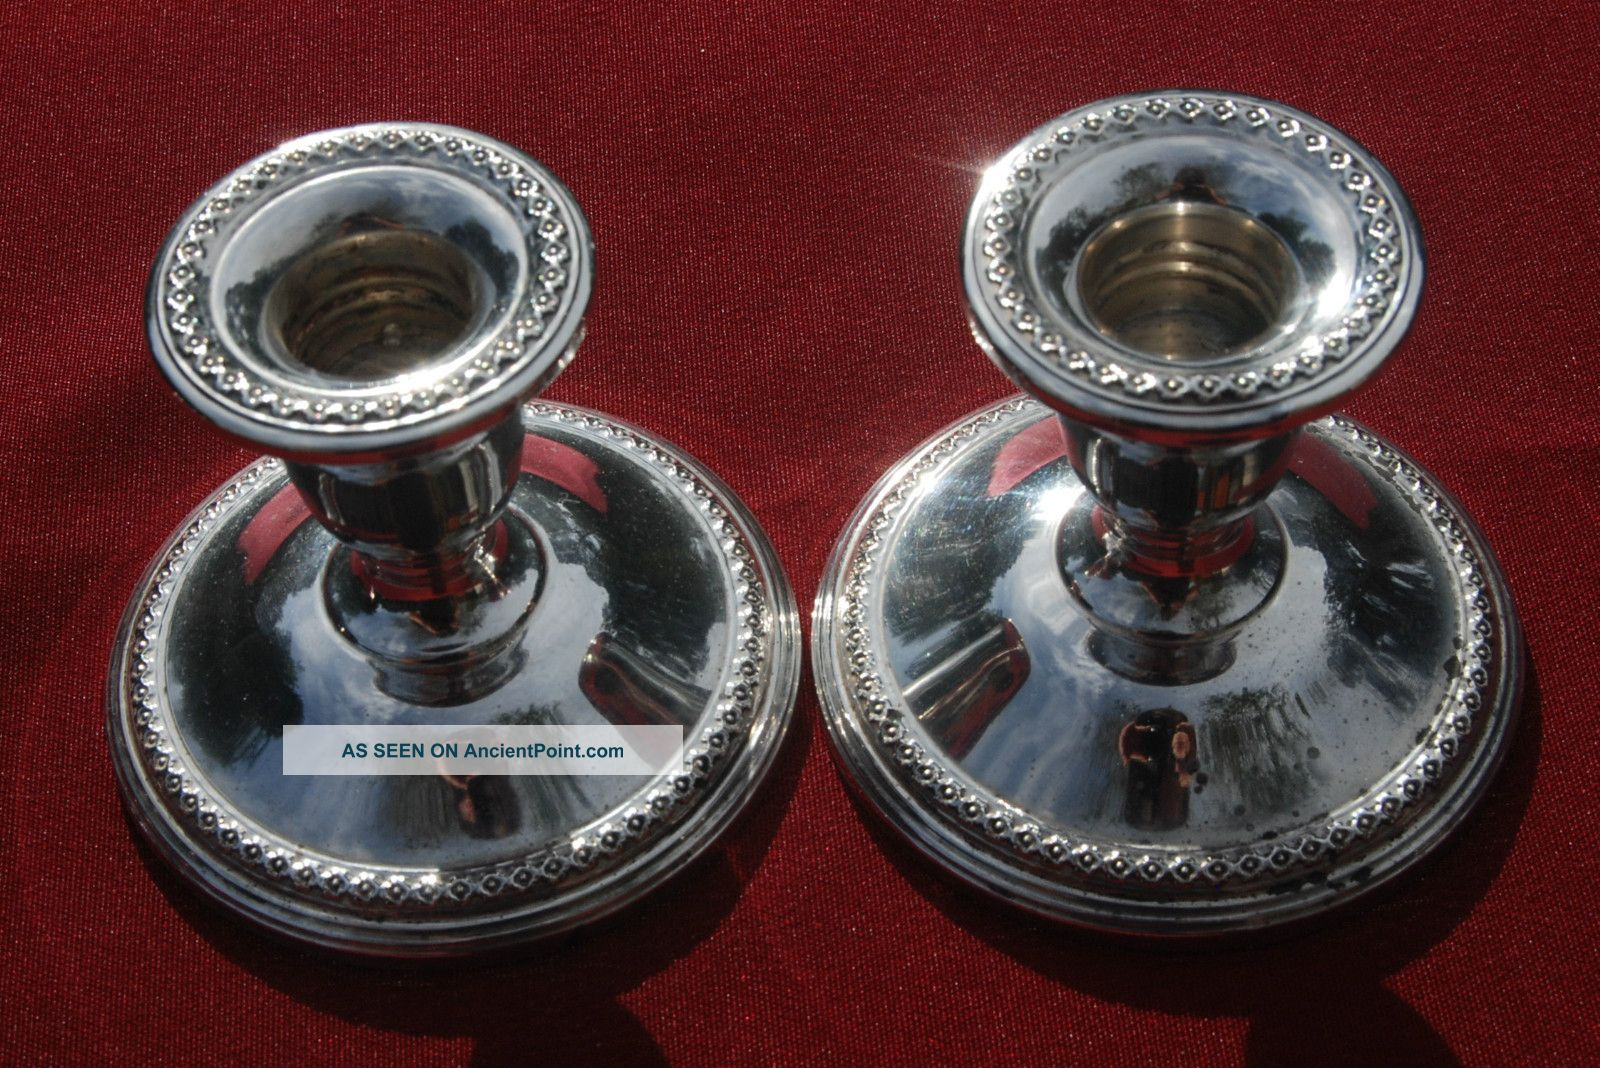 Sterling Pair Of Candle Holders - Rogers 201 - No Monograms Candlesticks & Candelabra photo